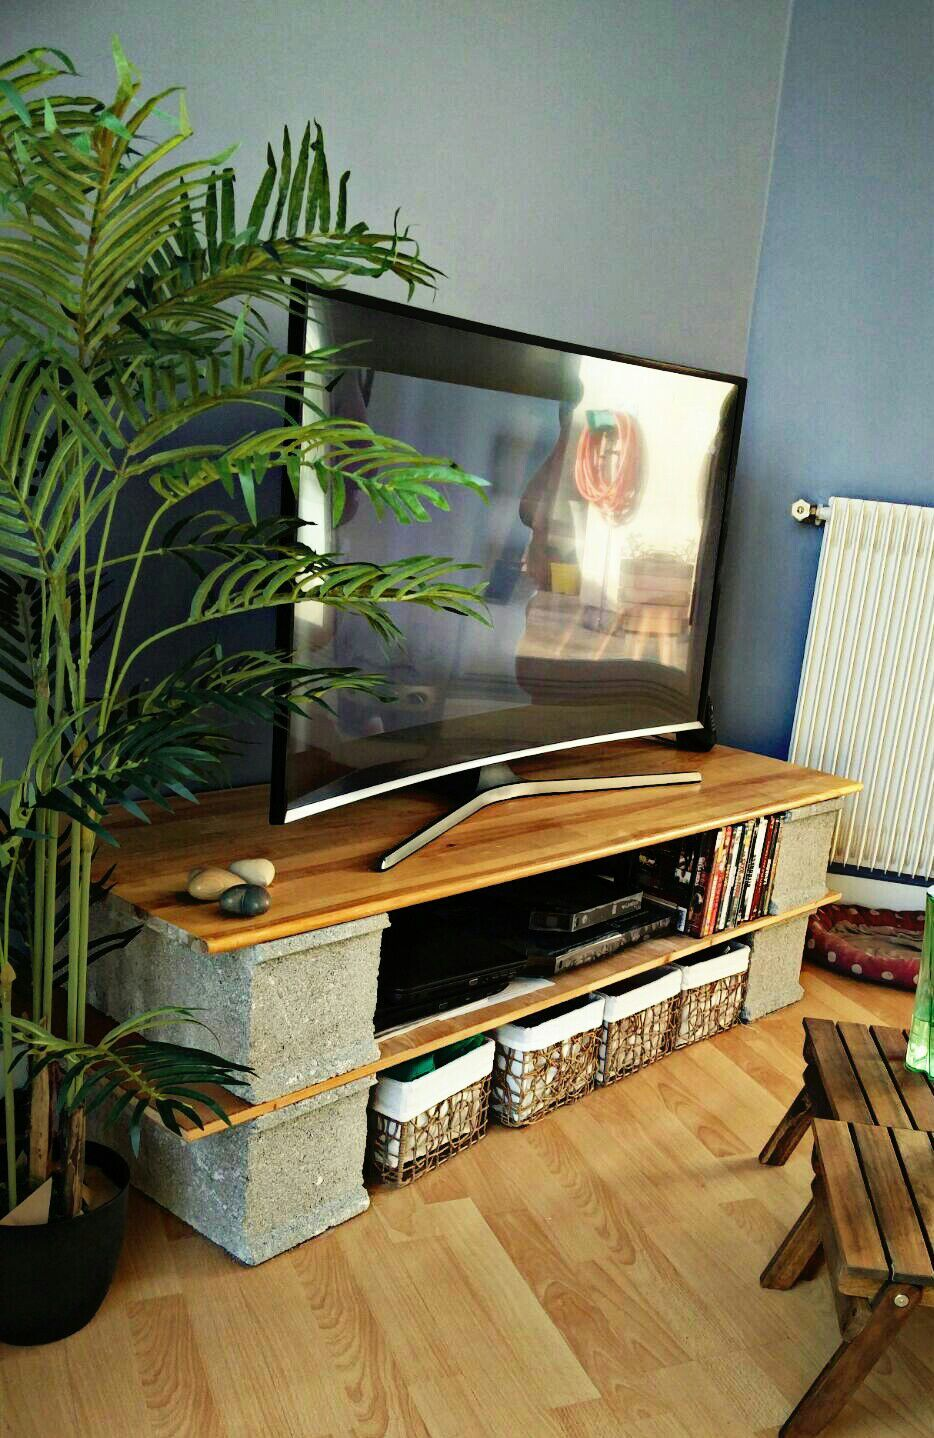 meuble tv dit parpaing et bois chalet pinterest tvs et bricolage. Black Bedroom Furniture Sets. Home Design Ideas